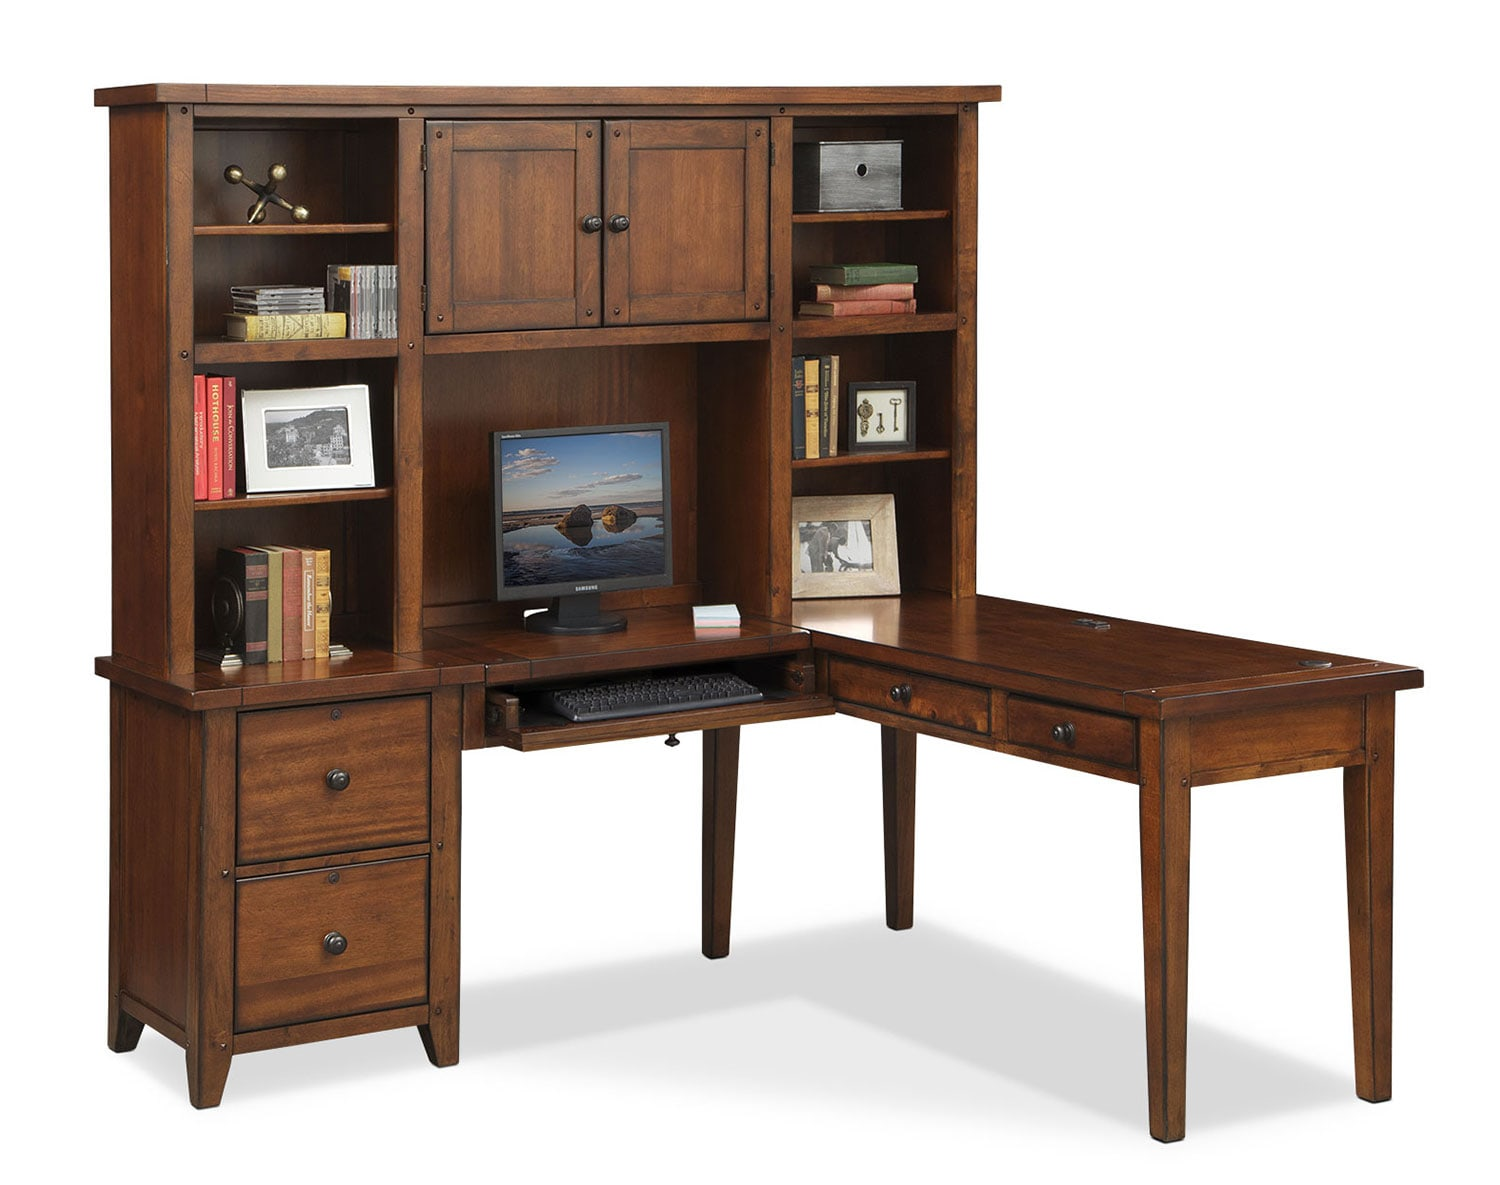 The Morgan Collection Brown Value City Furniture